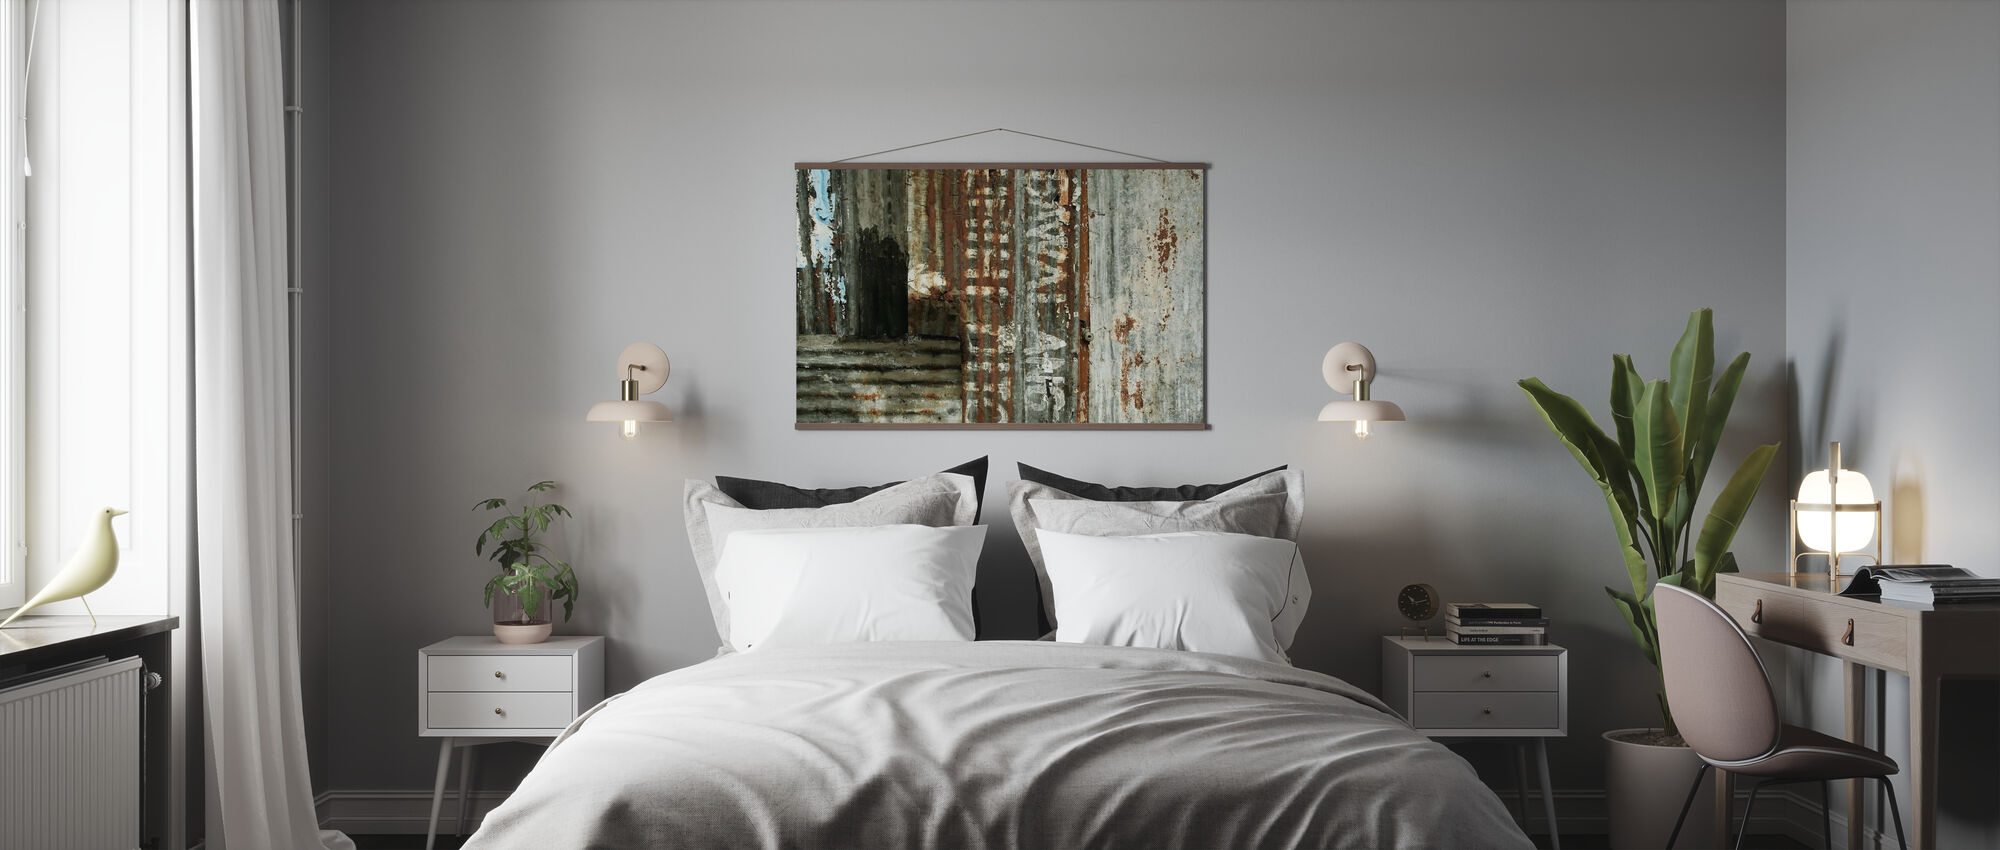 Corrugated Iron Sheeting - Poster - Bedroom